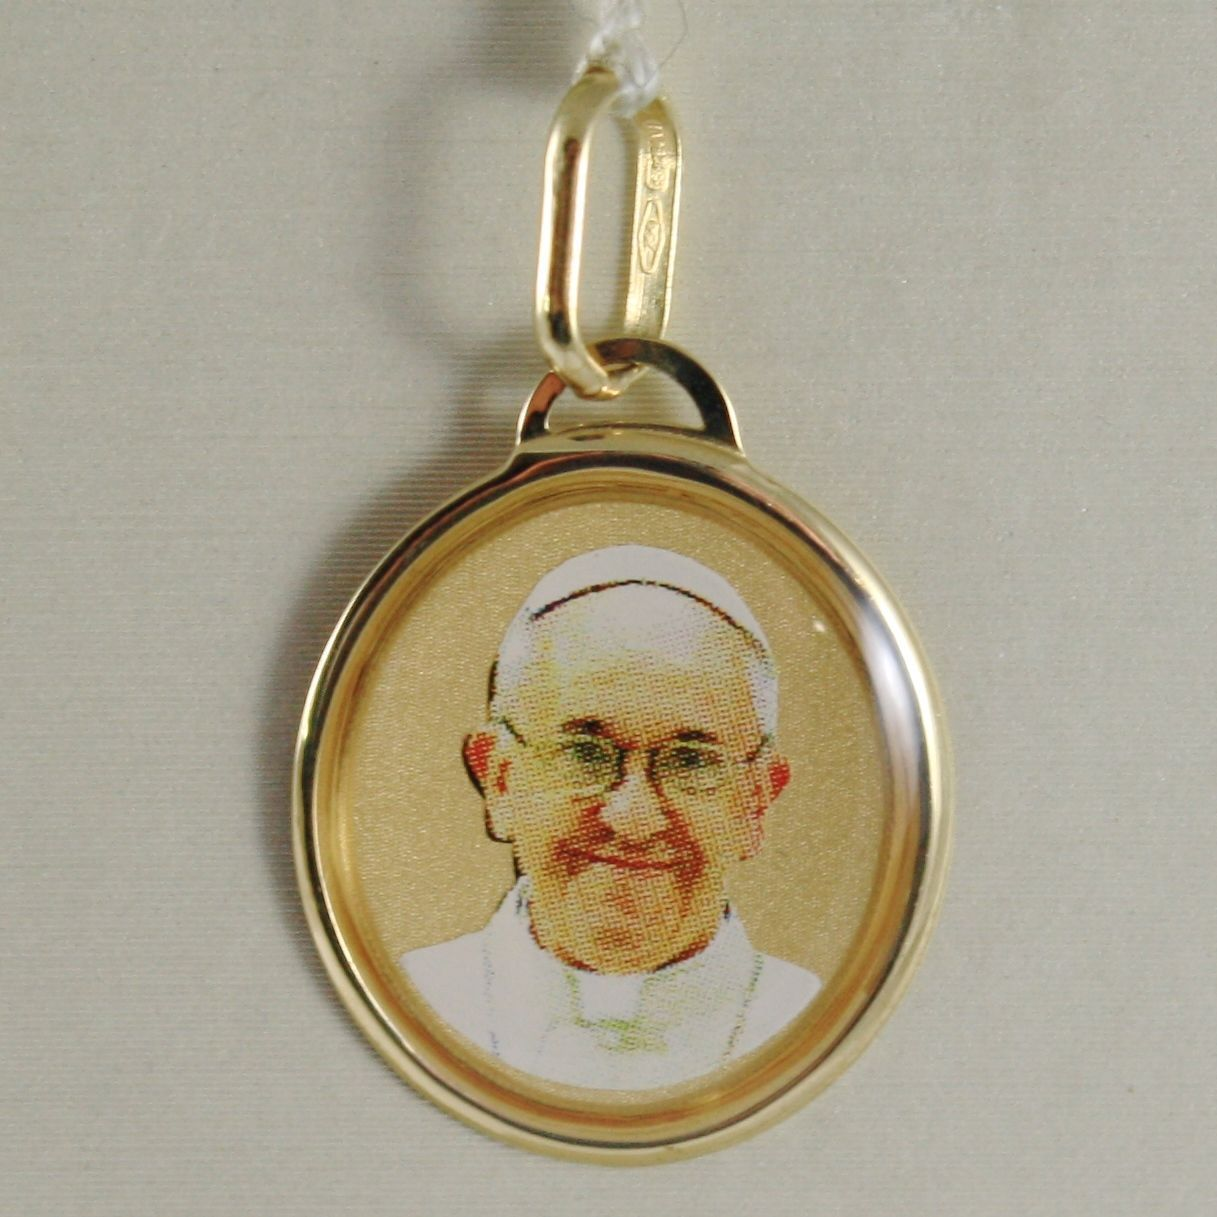 ANHÄNGER MEDAILLE GELBGOLD 750 18K, PAPST-FRANCIS, EMAILLIERT, MADE IN ITALY